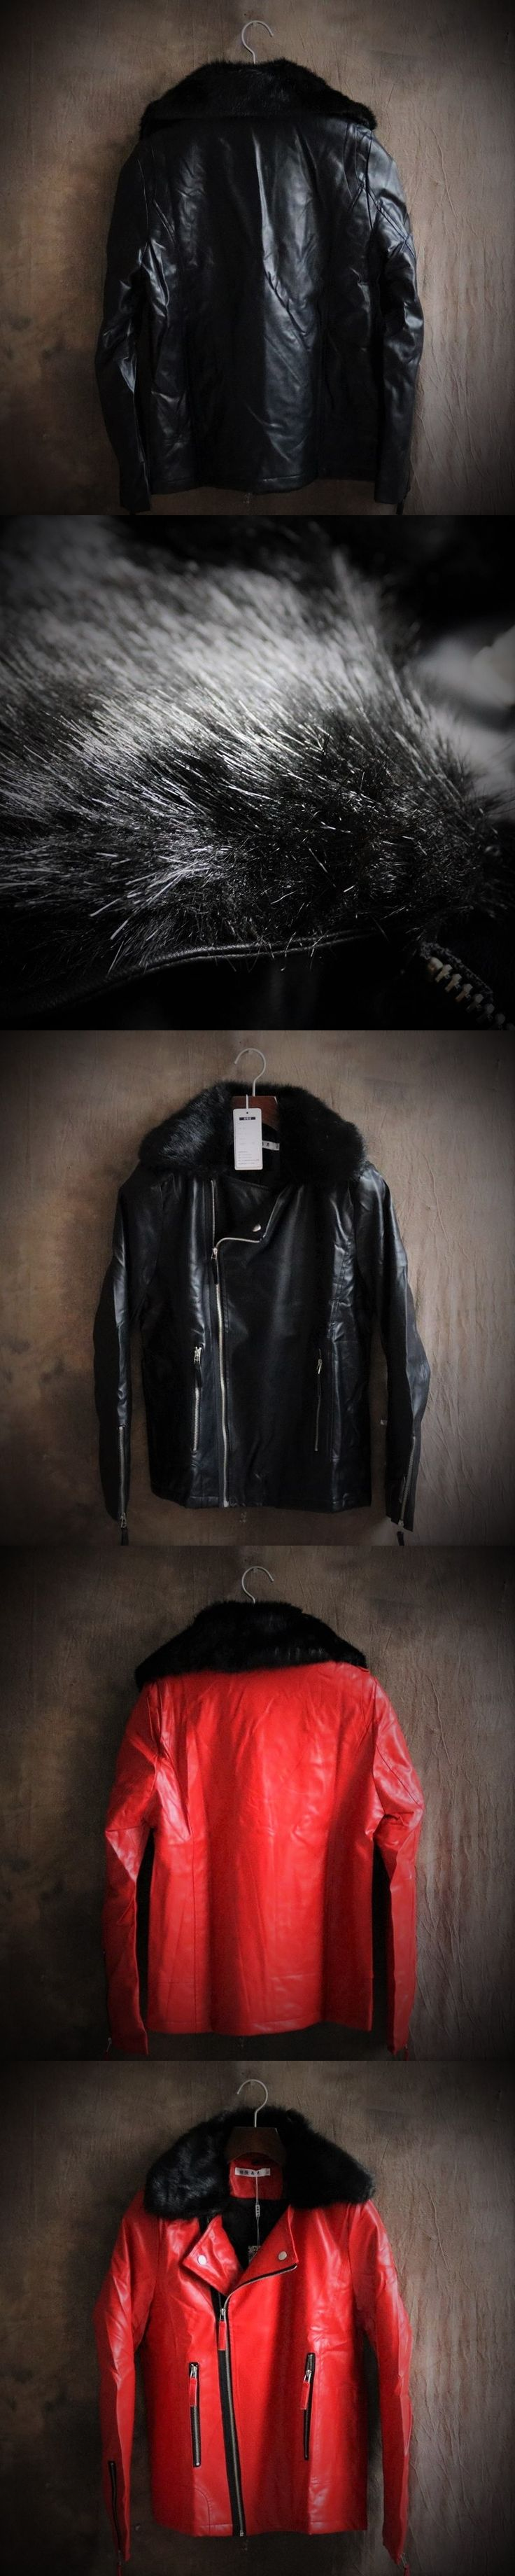 Pu Leather Jacket Men Faux Fur Coat Winter Leather Jackets For Mens Leather Bomber Motorcycle Jacket Cheap Leather Coats Luxury